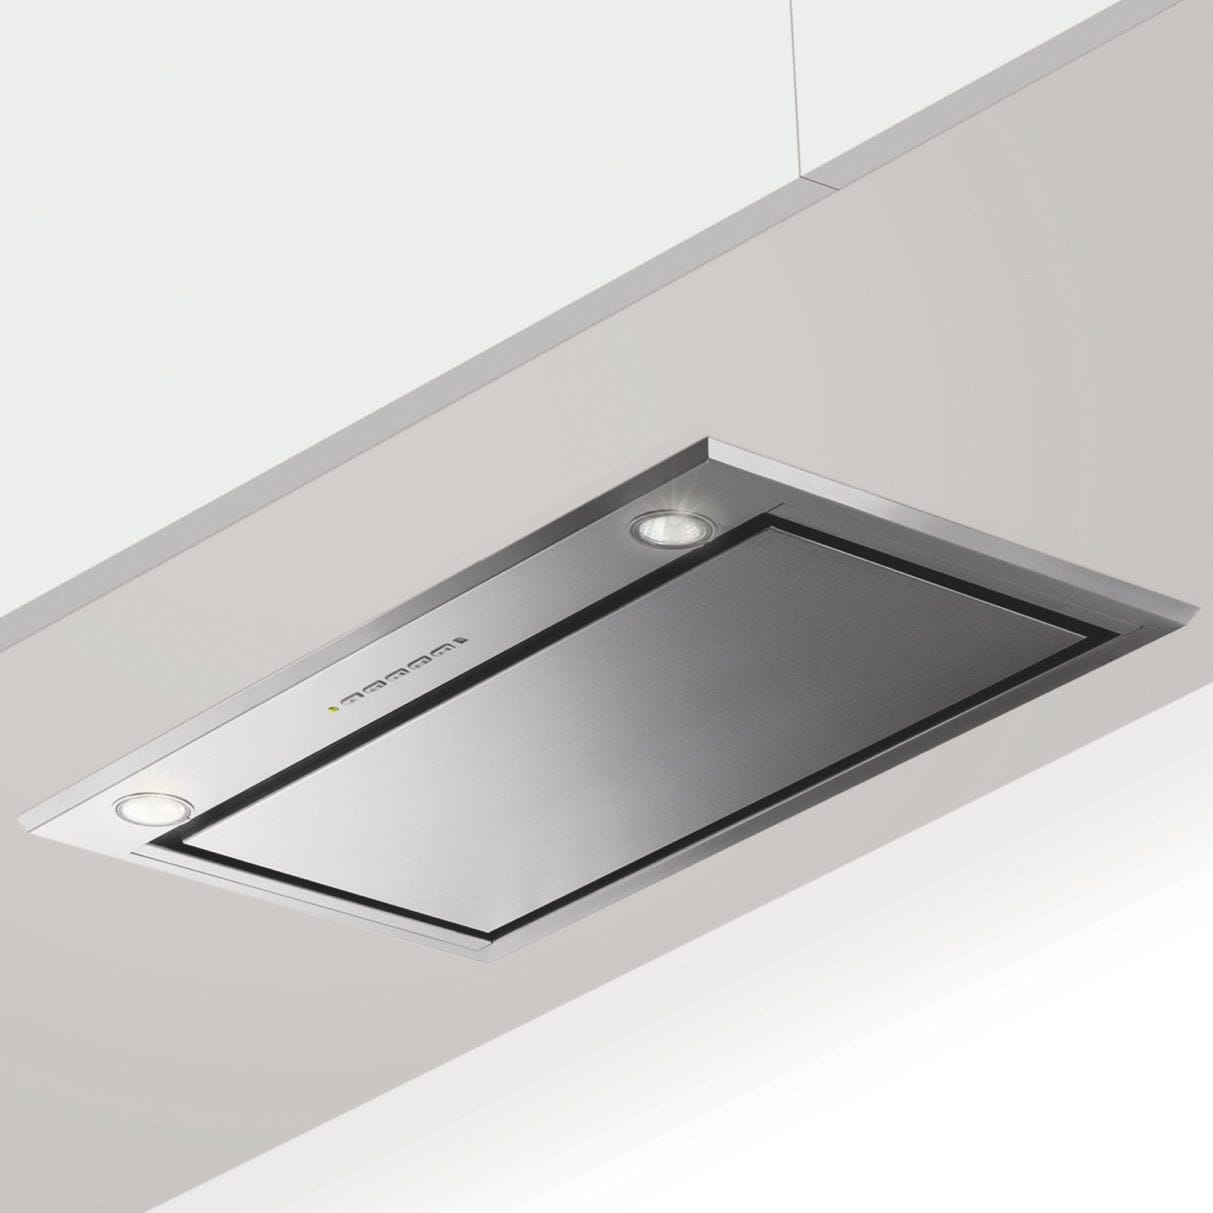 extractor ceiling fan kitchen of reviews depot size exhaust small large hood hoods home full external range smoke fans portable mounted ceilings